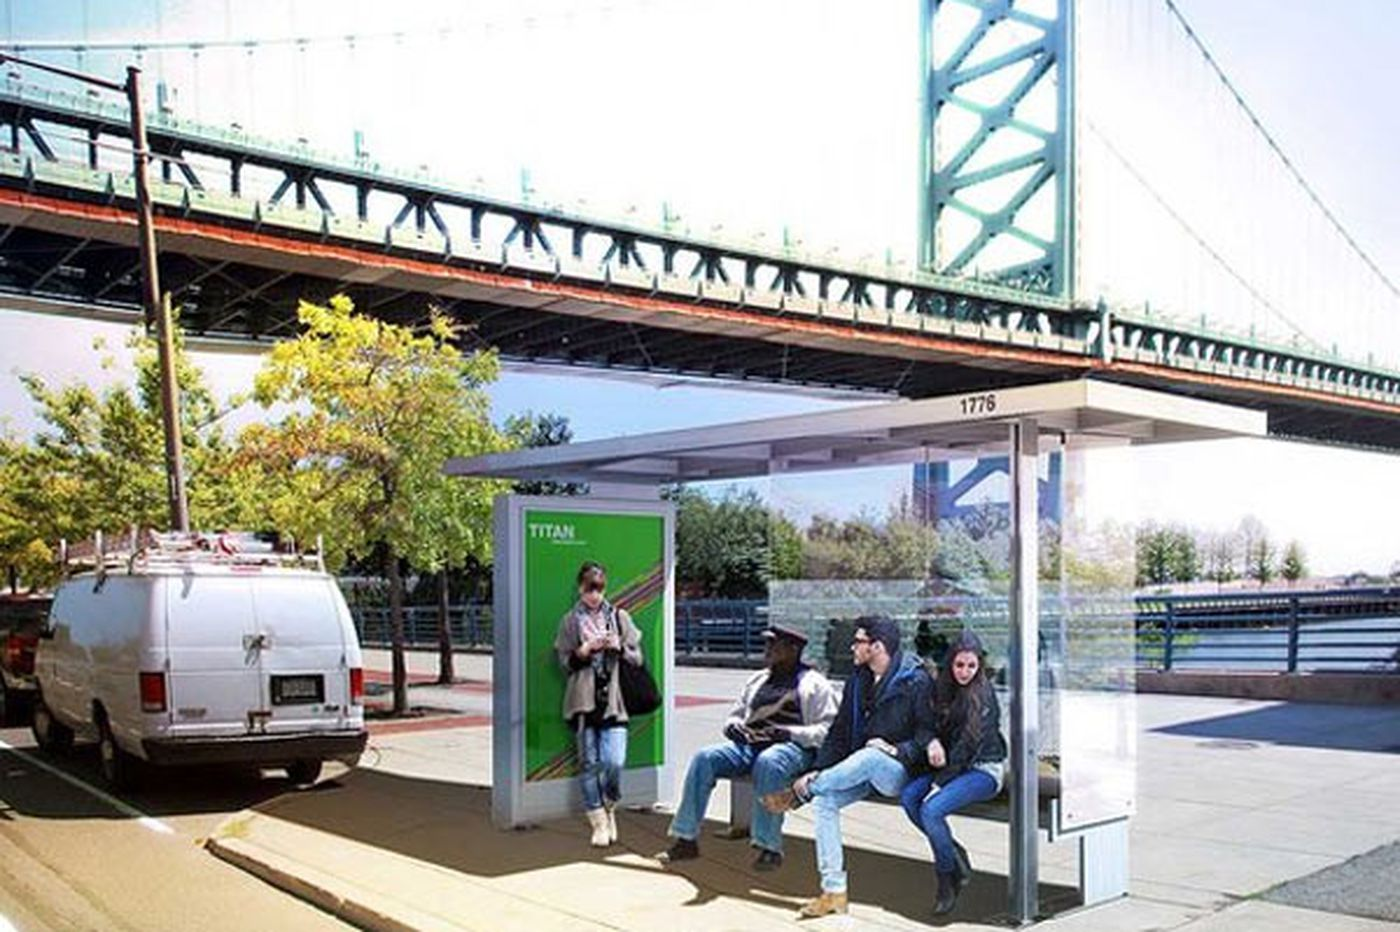 Proposal for advertising on city bus shelters advances